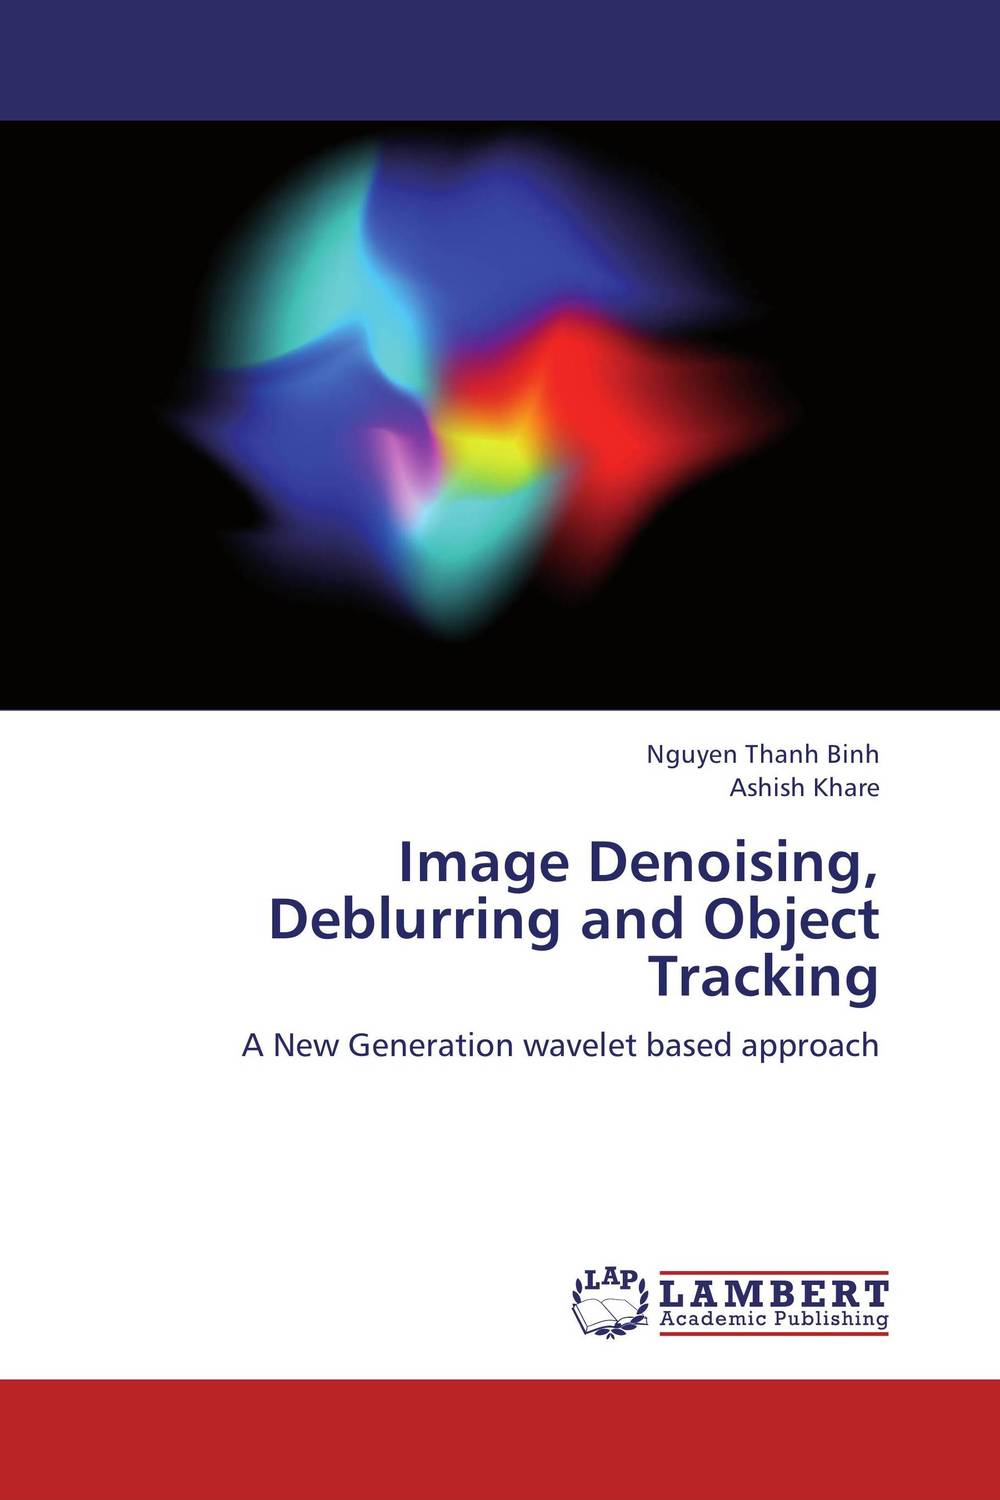 Image Denoising, Deblurring and Object Tracking video object tracking